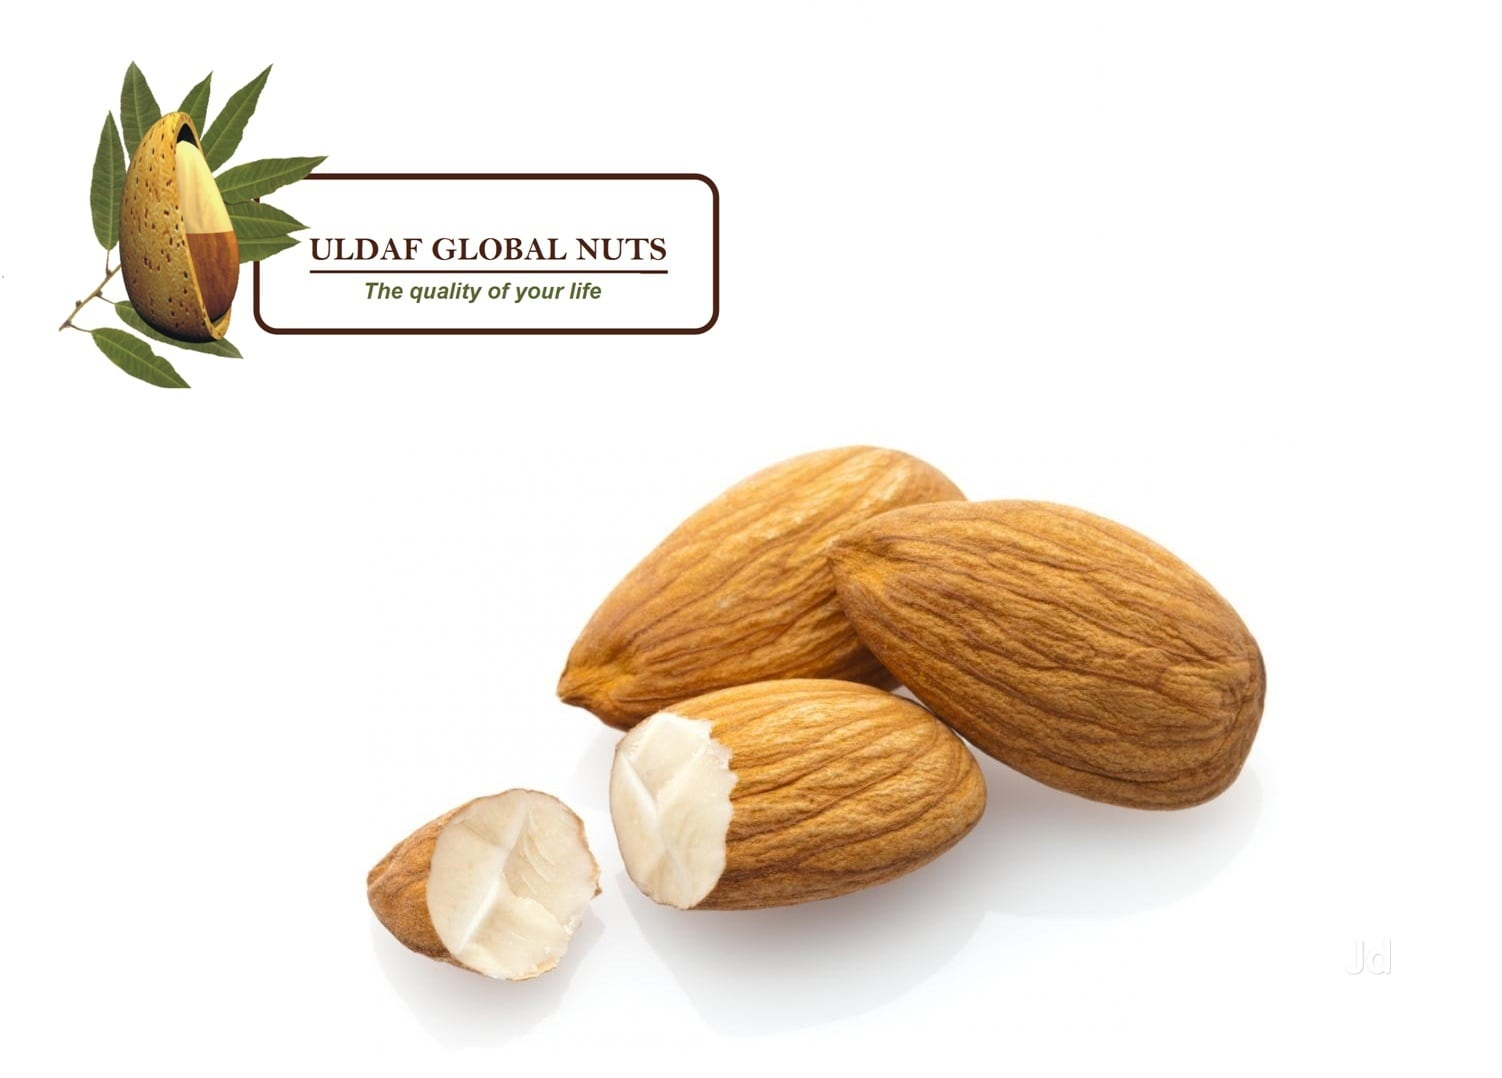 Top Dry Fruit Importers in Bangalore - Justdial